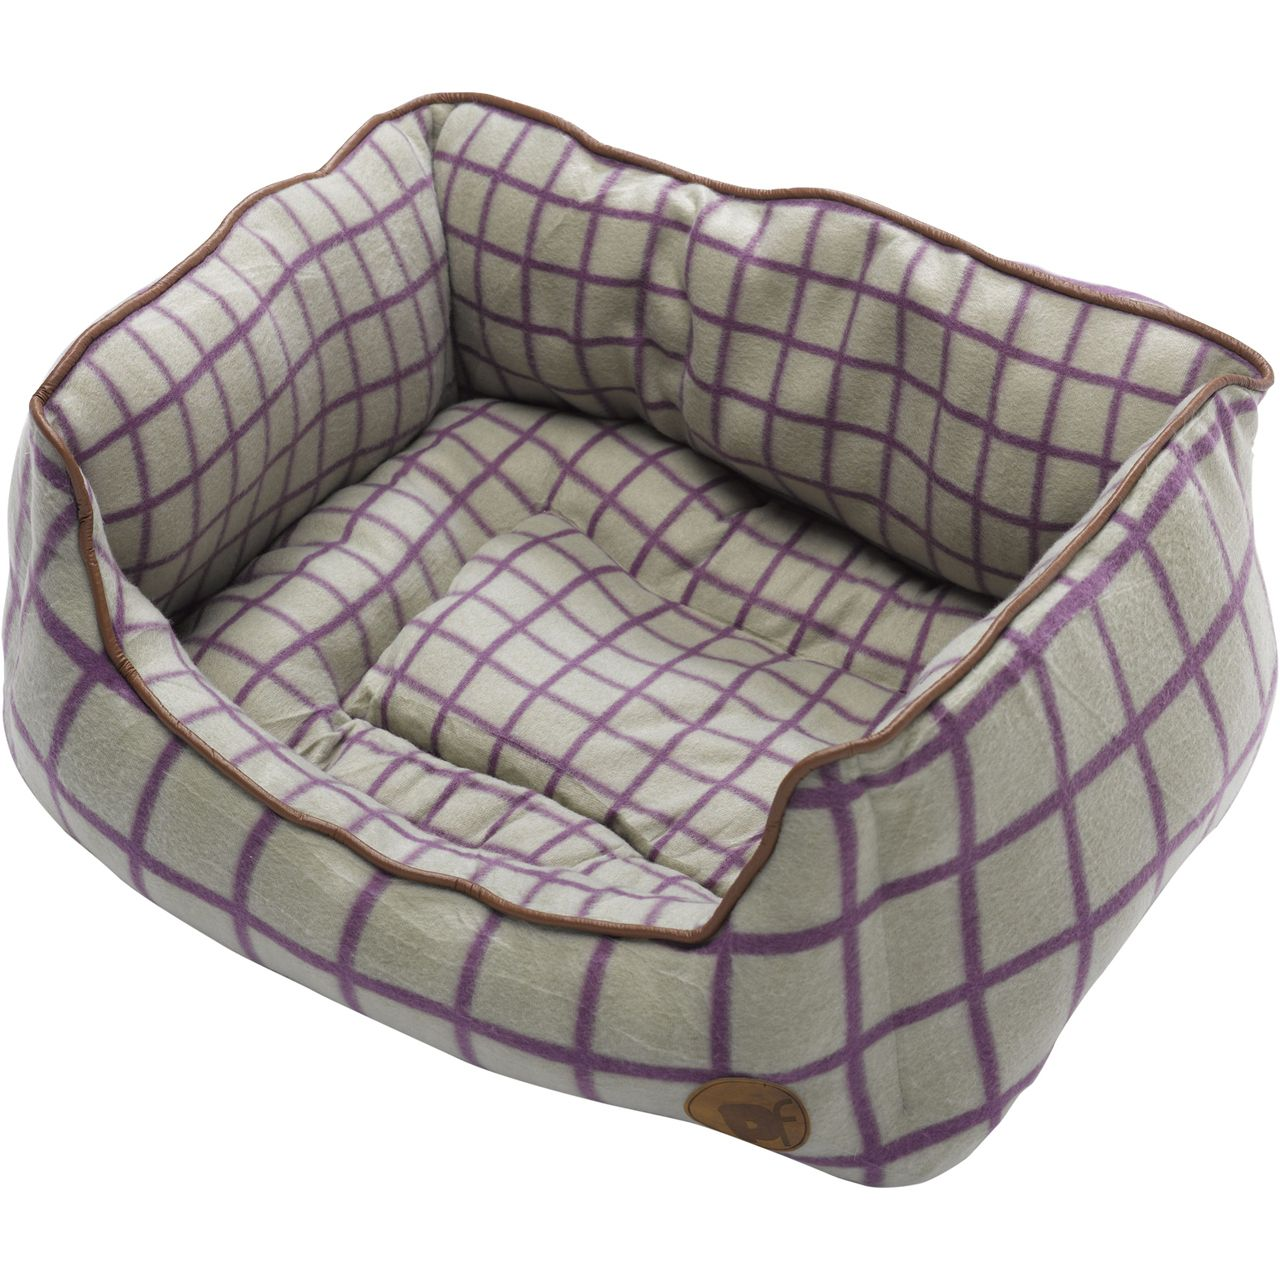 Petface Green & Purple Window Pane Check Square Dog Bed